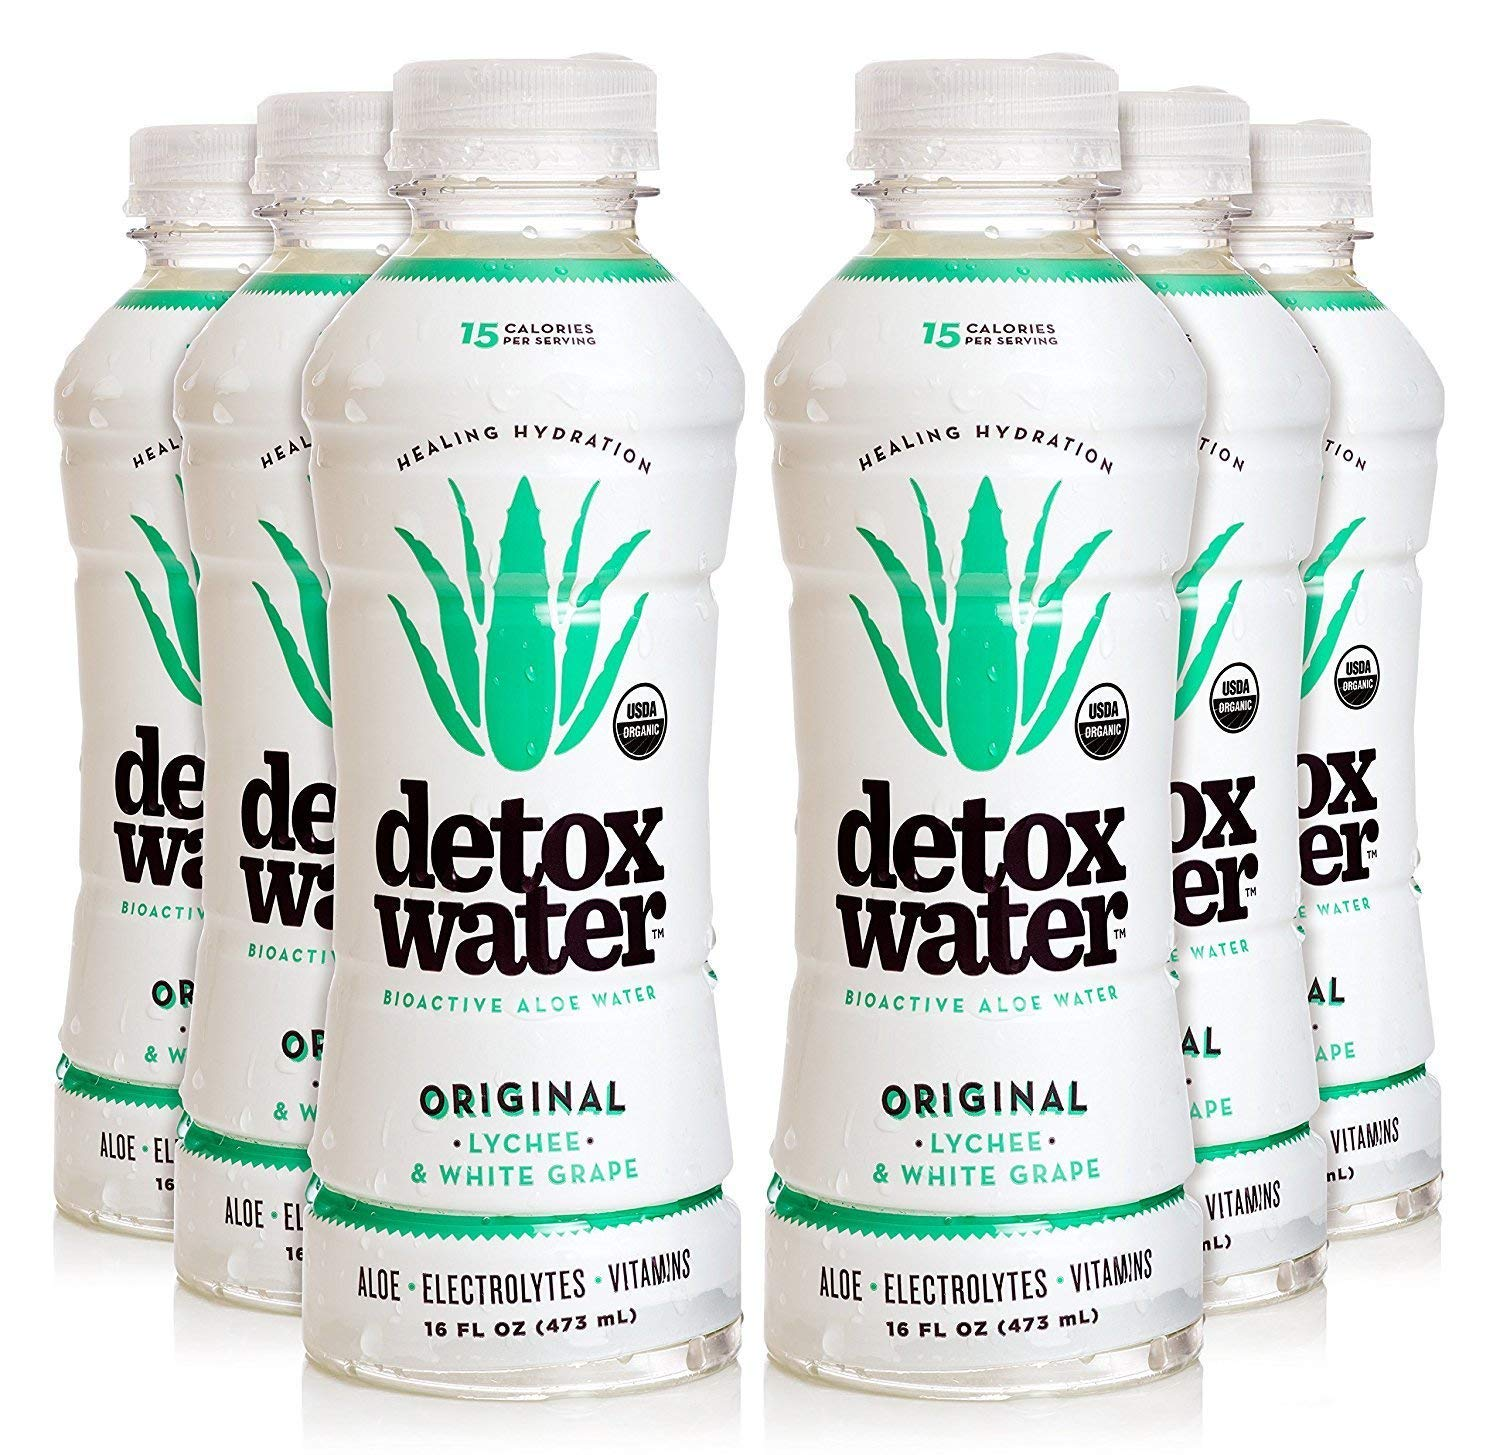 Detoxwater Prebiotic Aloe Water - Original (Lychee & White Grape) 16 Fluid Ounces, Pack of 6